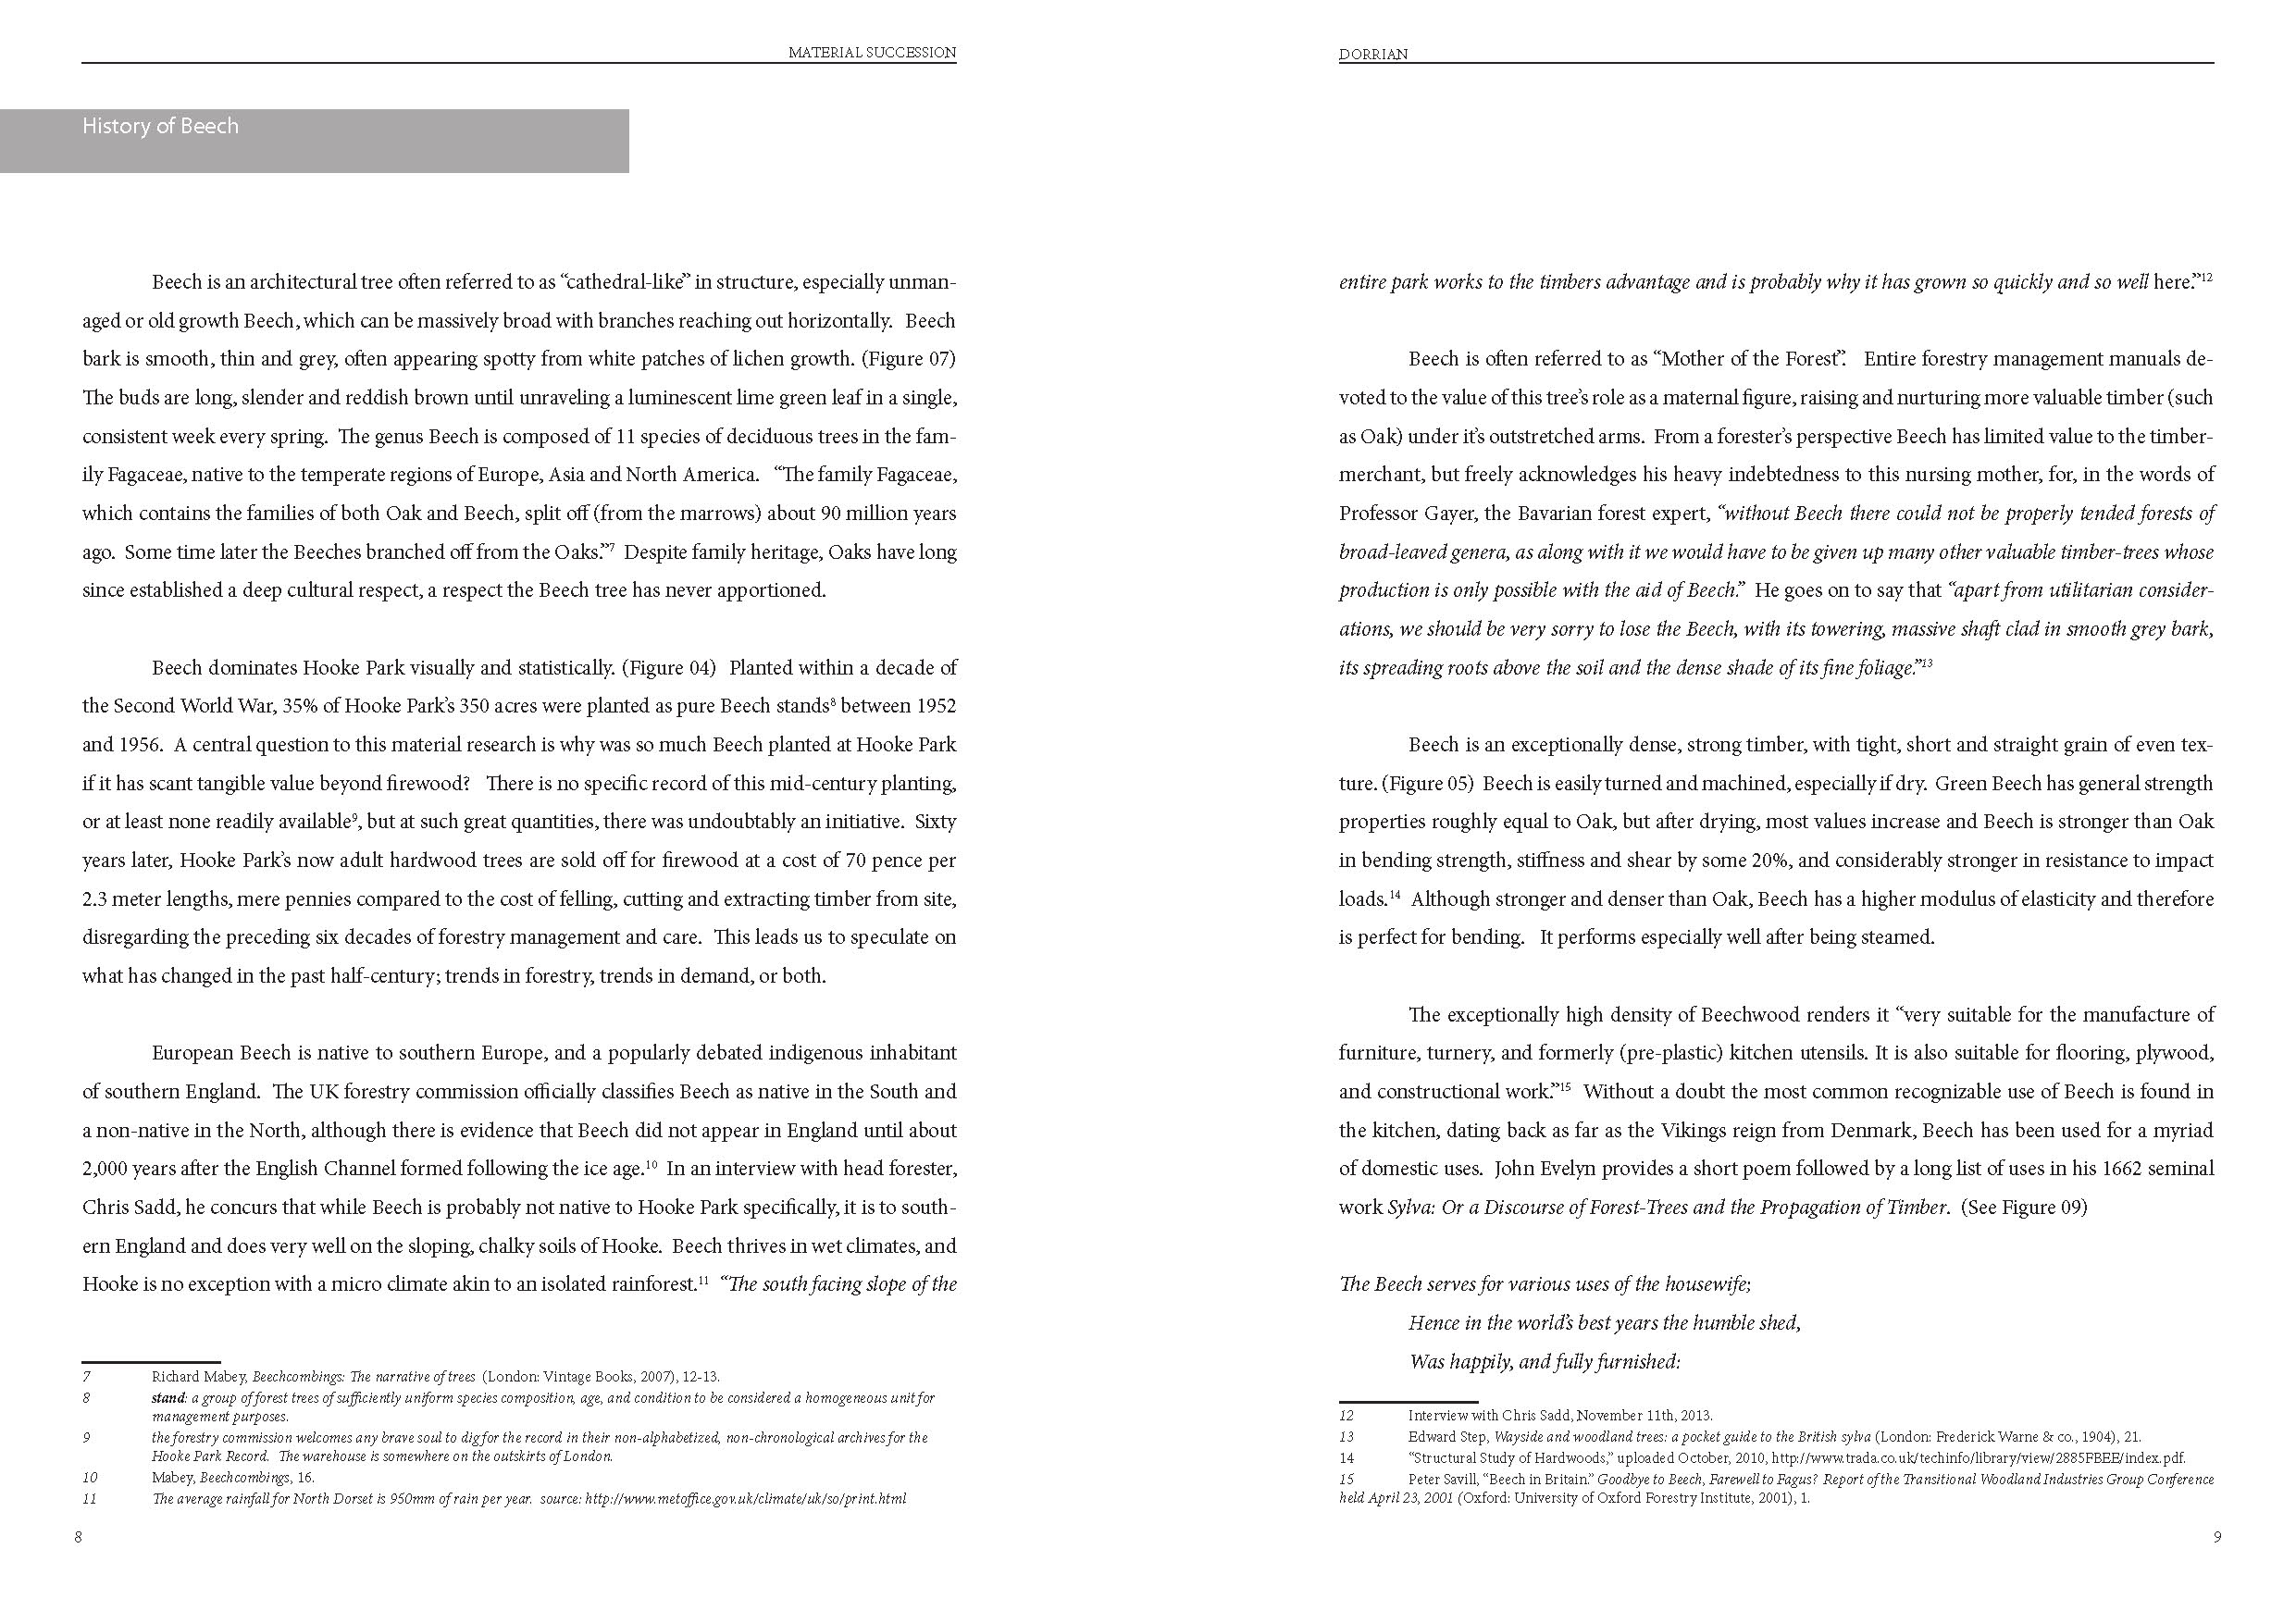 130131_Material SuccessionFORSUBMITTAL_Page_09.jpg